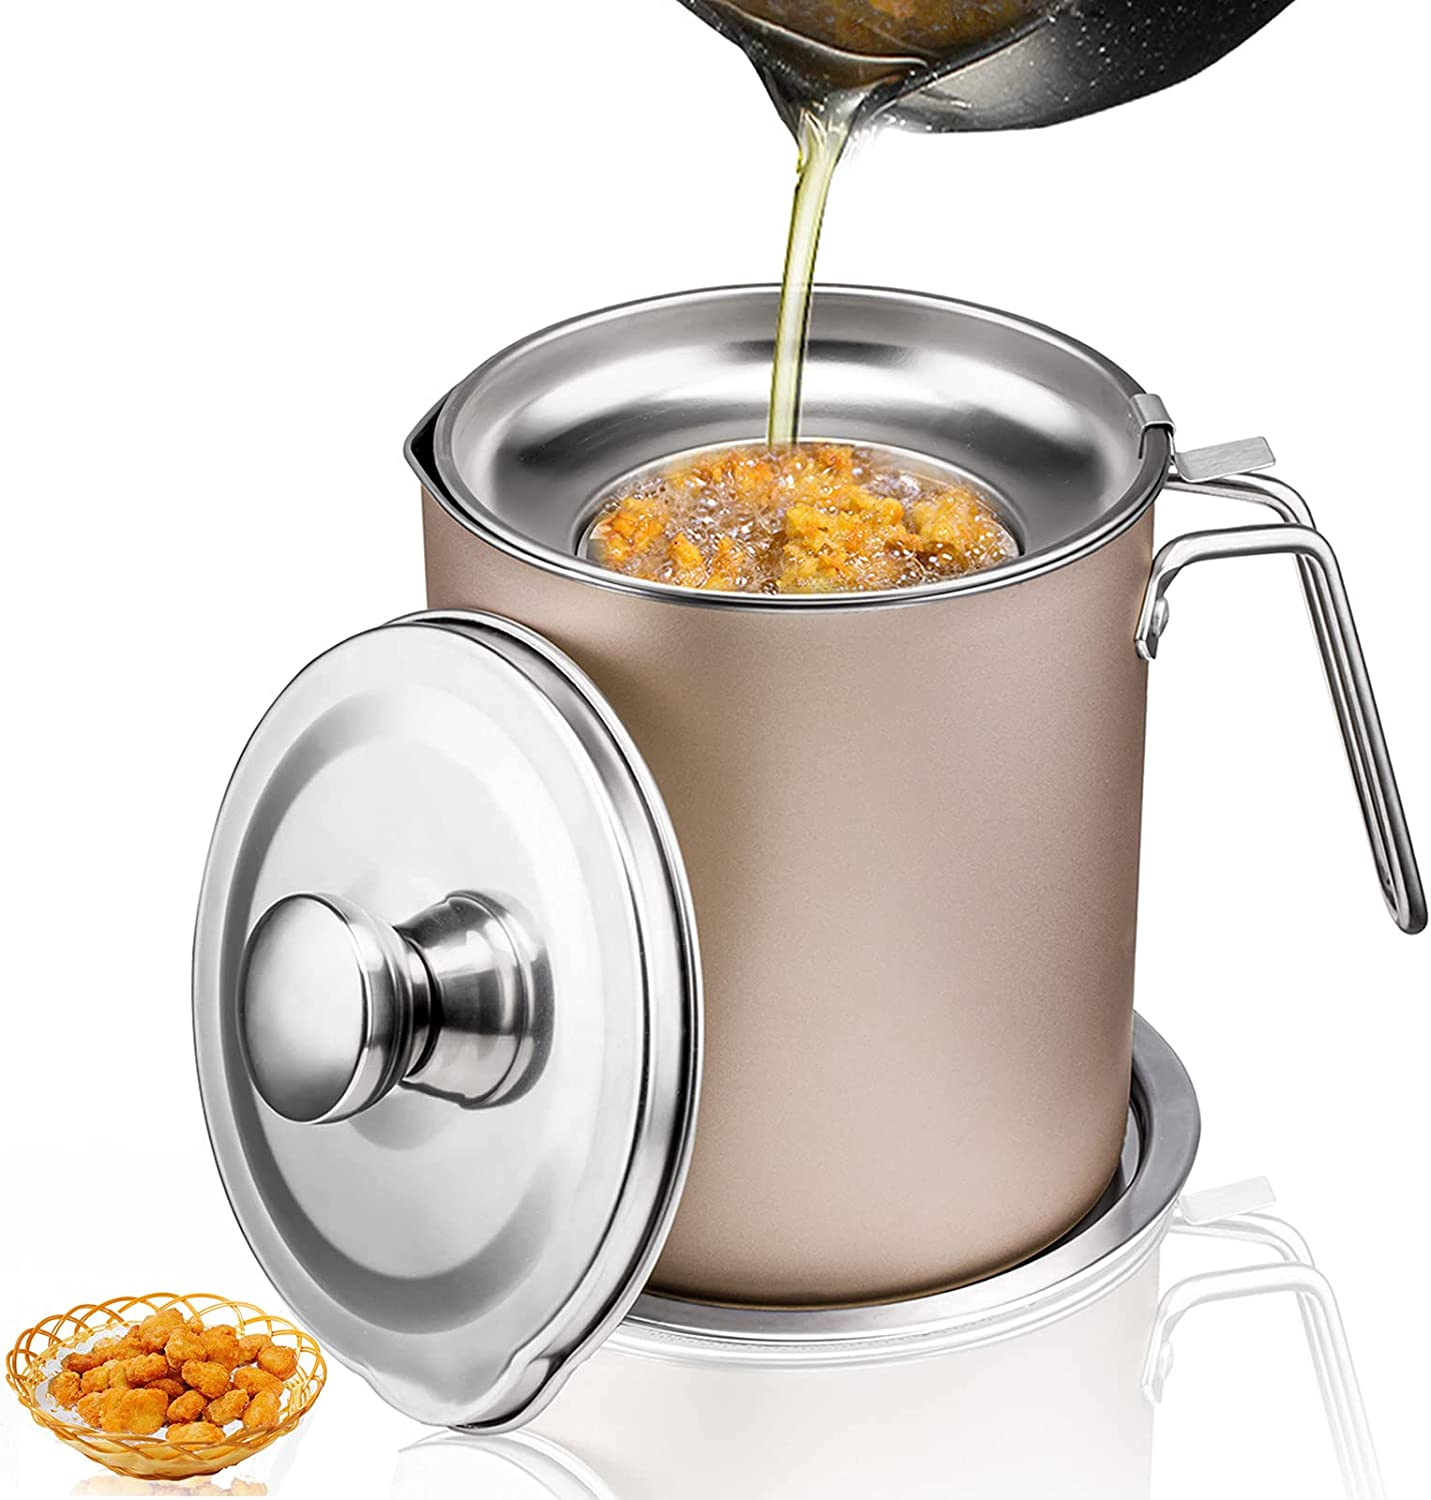 Bacon Grease Container,Oil Container Kitchen,2L Stainless Steel Oil Storage Can Container with Strainer,Removable a Coaster Tray for Storing Frying Oil and Cooking Grease (Gold)